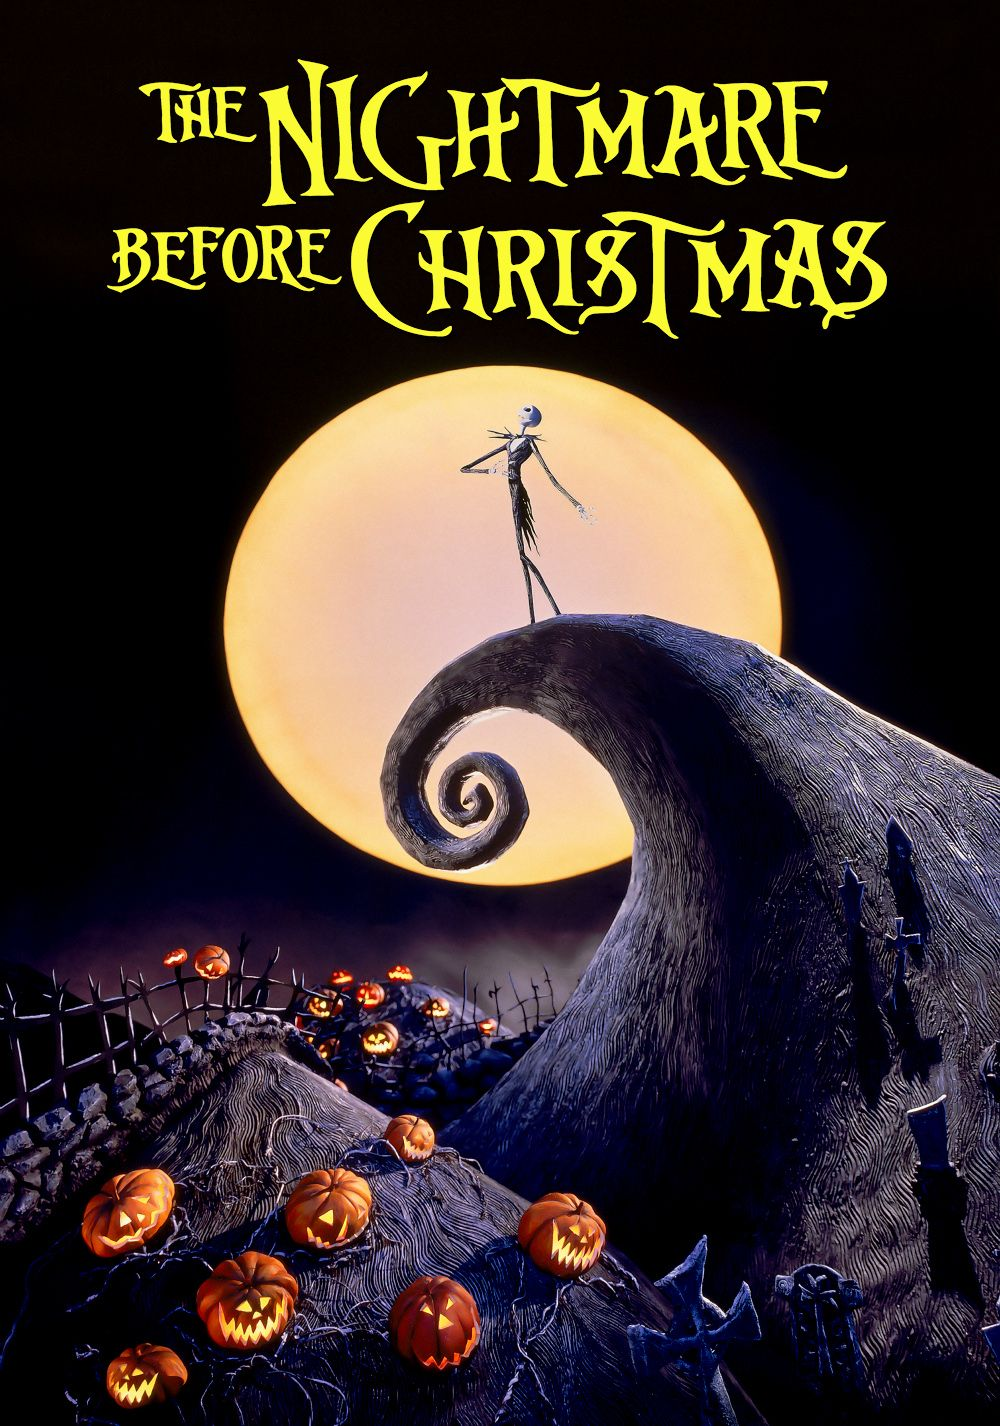 the nightmare before christmas poster Szukaj w Google